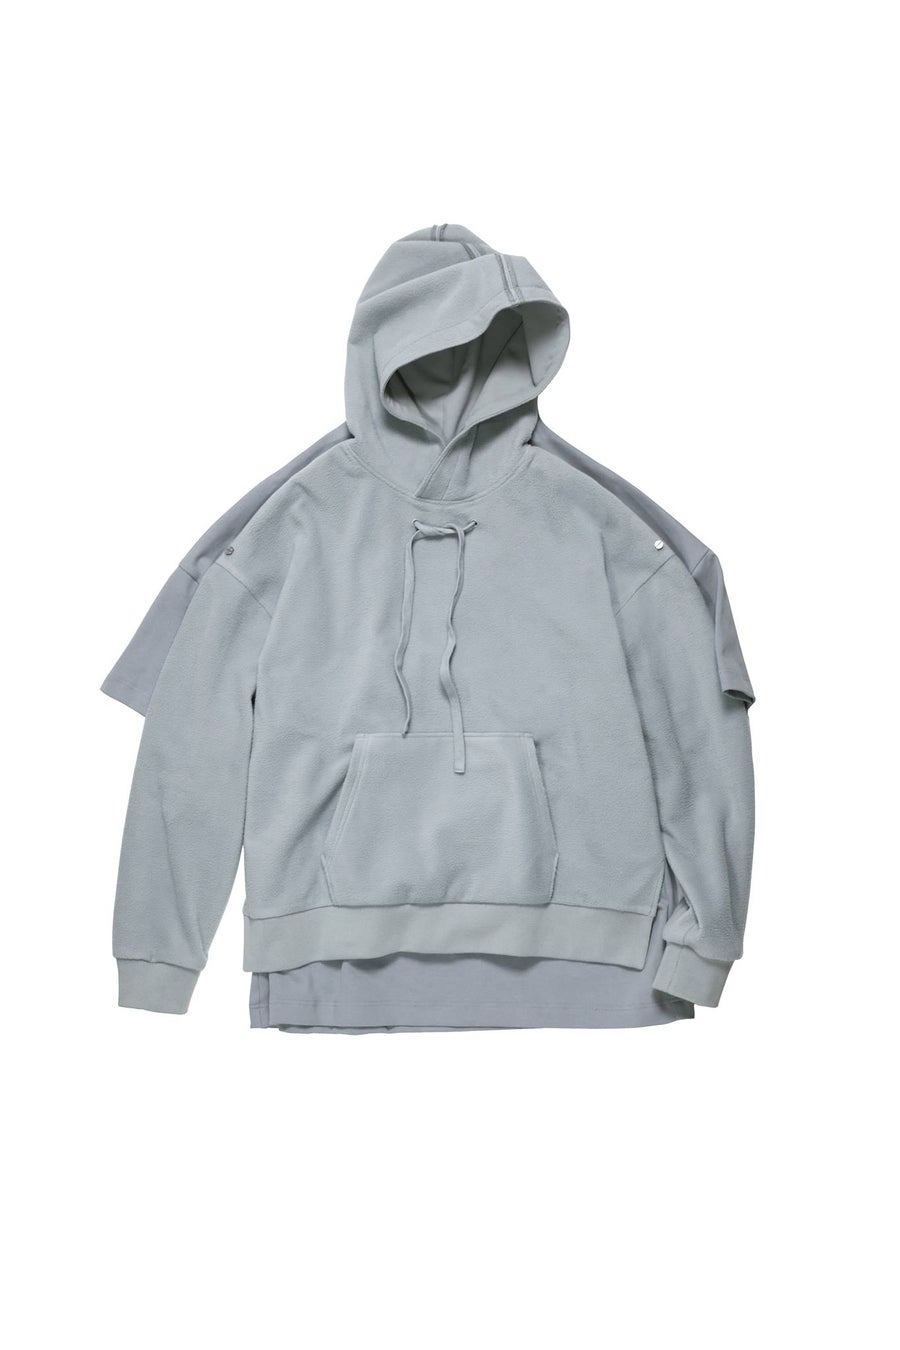 Image of (A)crypsis 2019S/S TFW PROJECT-OVERSIZE HOODIES